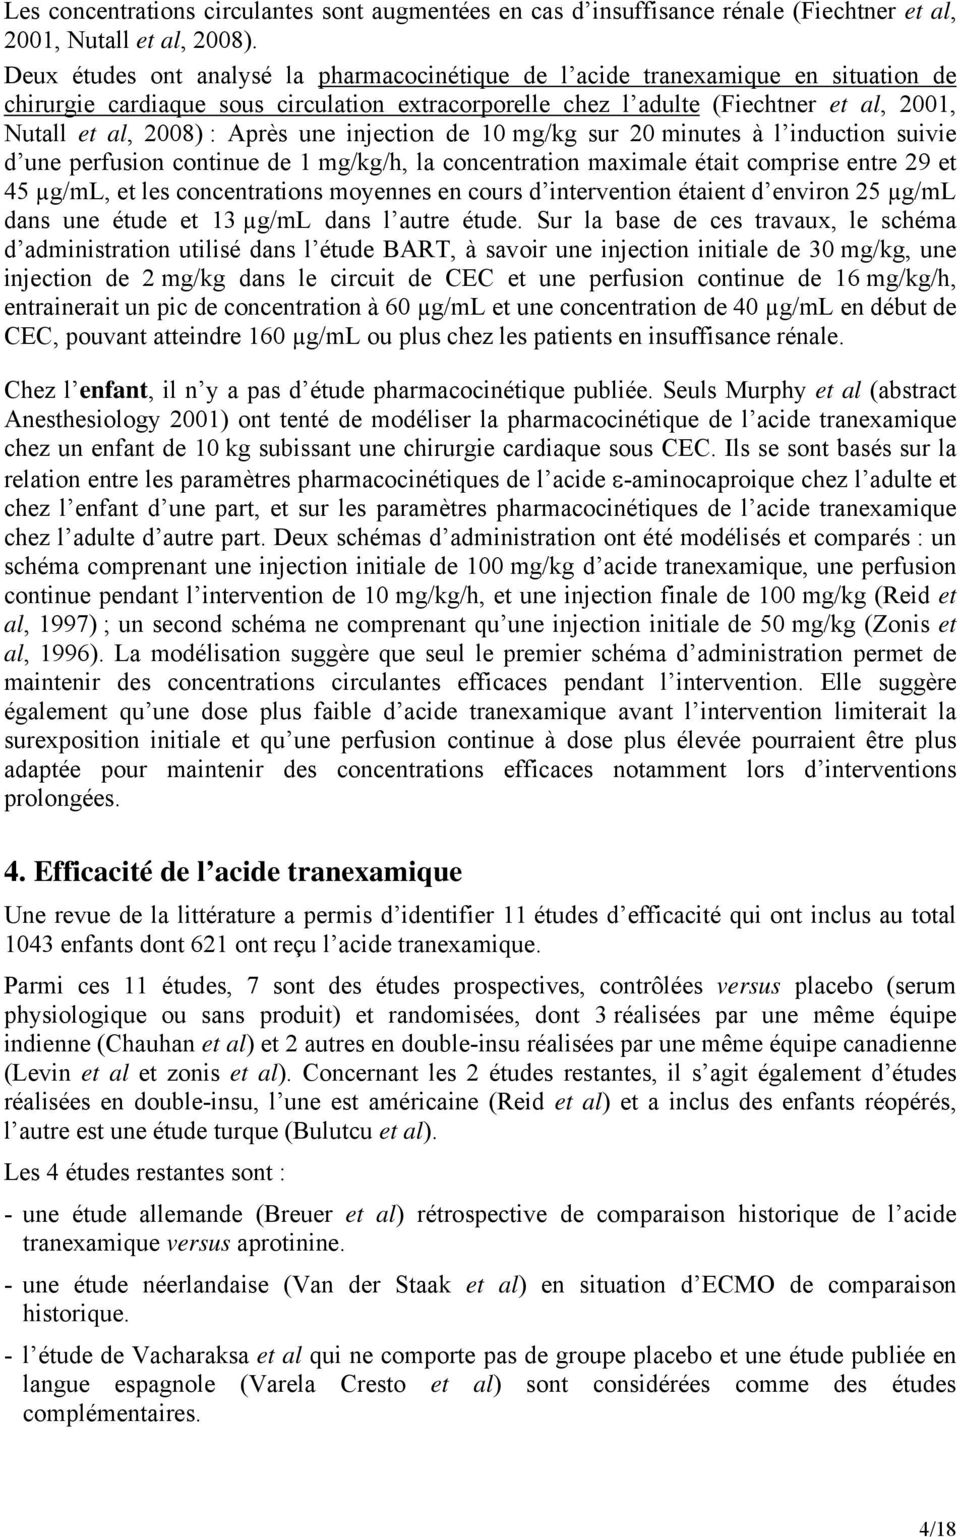 Après une injection de 10 mg/kg sur 20 minutes à l induction suivie d une perfusion continue de 1 mg/kg/h, la concentration maximale était comprise entre 29 et 45 µg/ml, et les concentrations